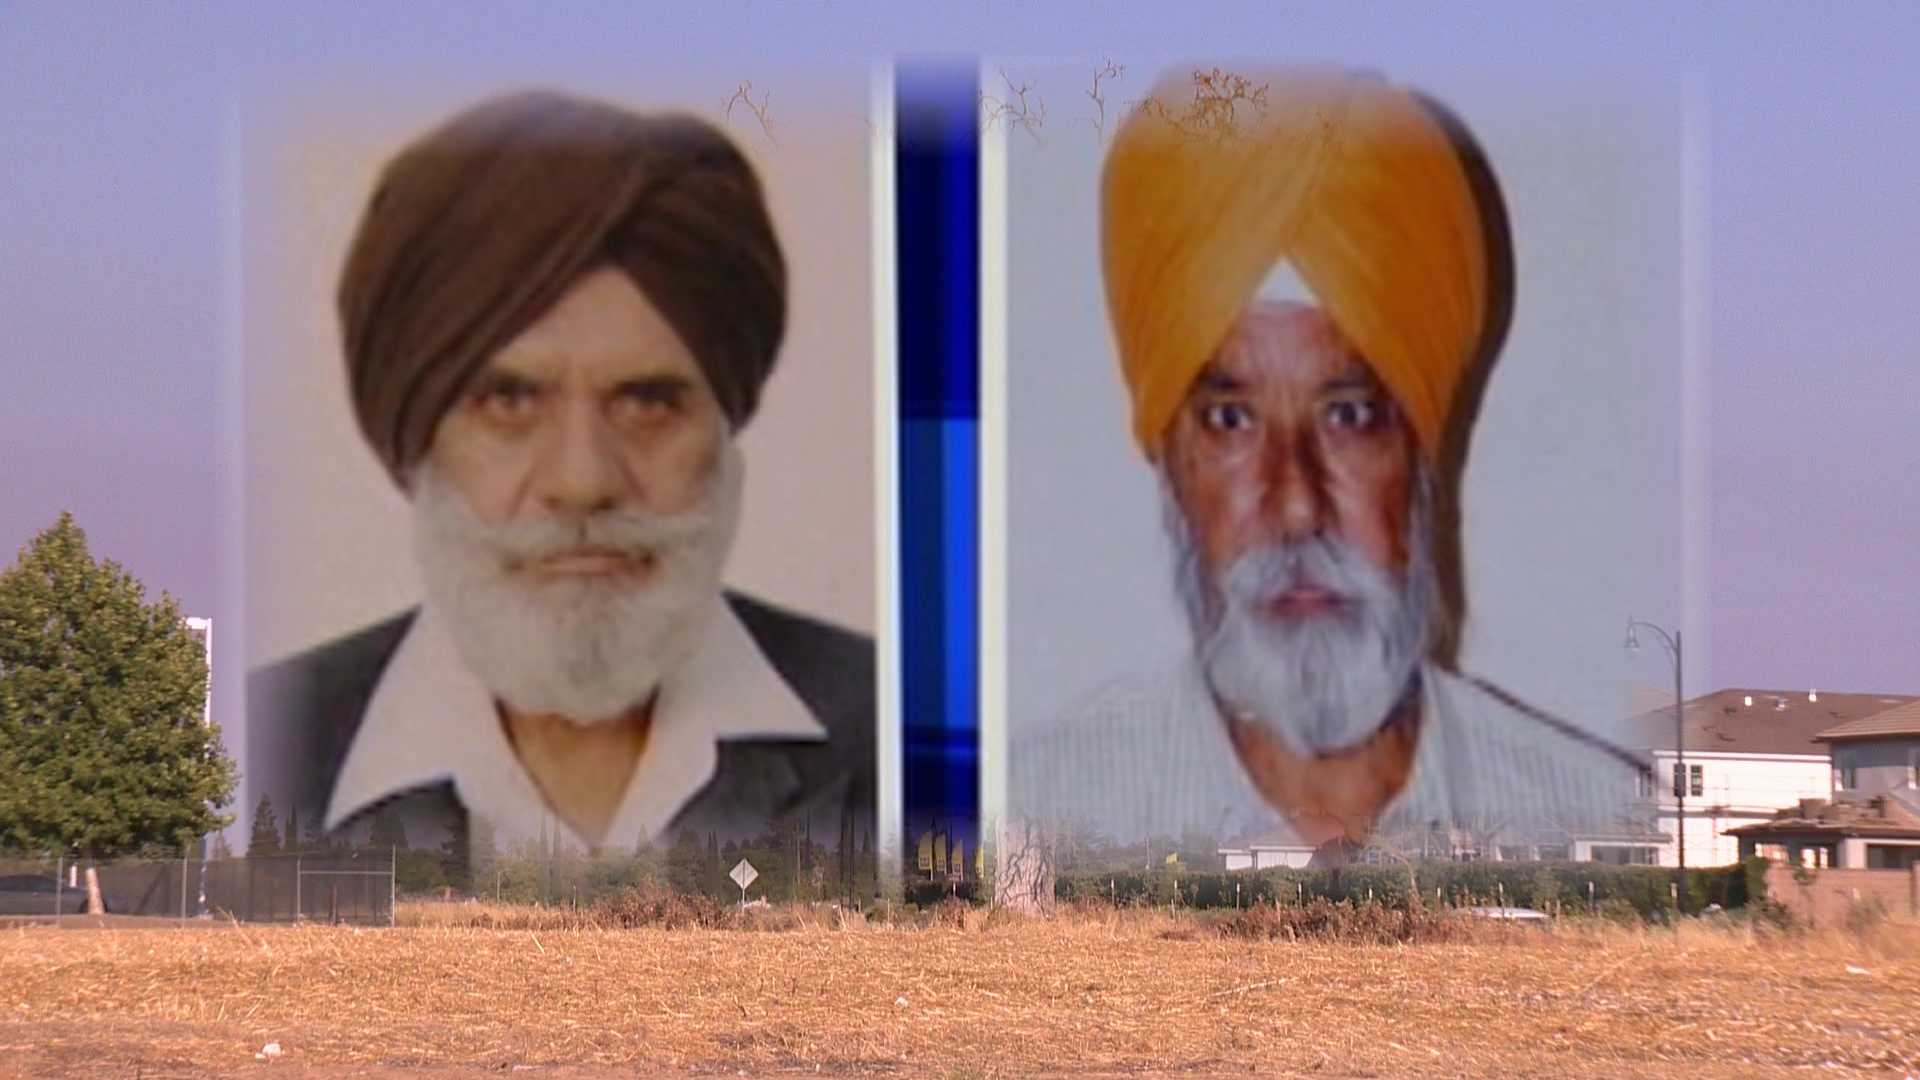 A new Elk Grove park will be named after Surinder Kaur Singh and Gurmej Singh Atwal. The two Sikh men were gunned down while walking down the street of a neighborhood in March 2011.